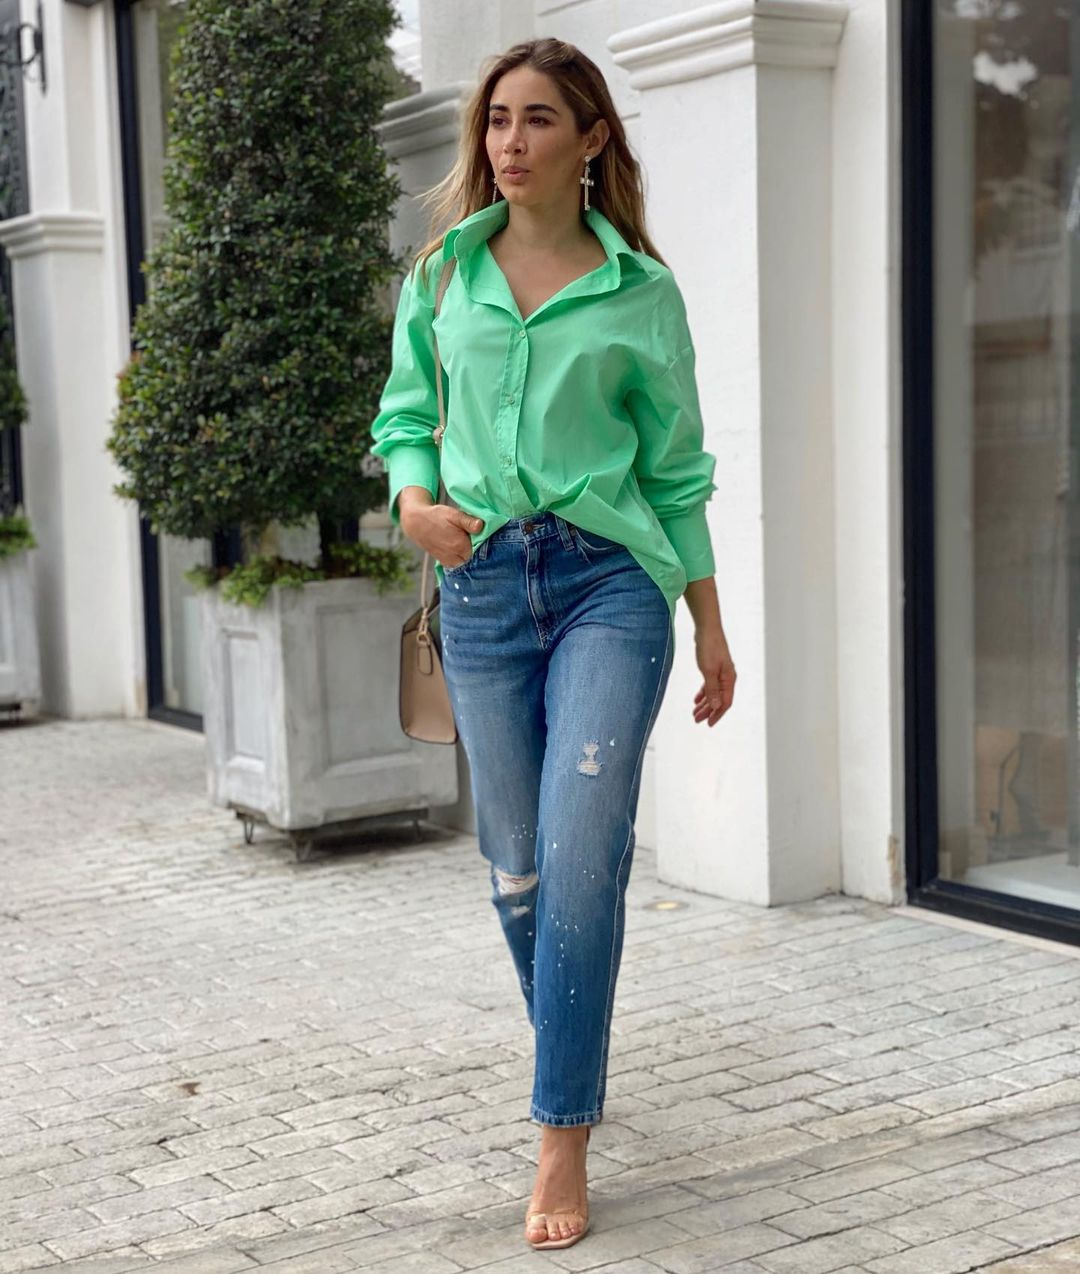 Outfits that you can put together with oversize shirts